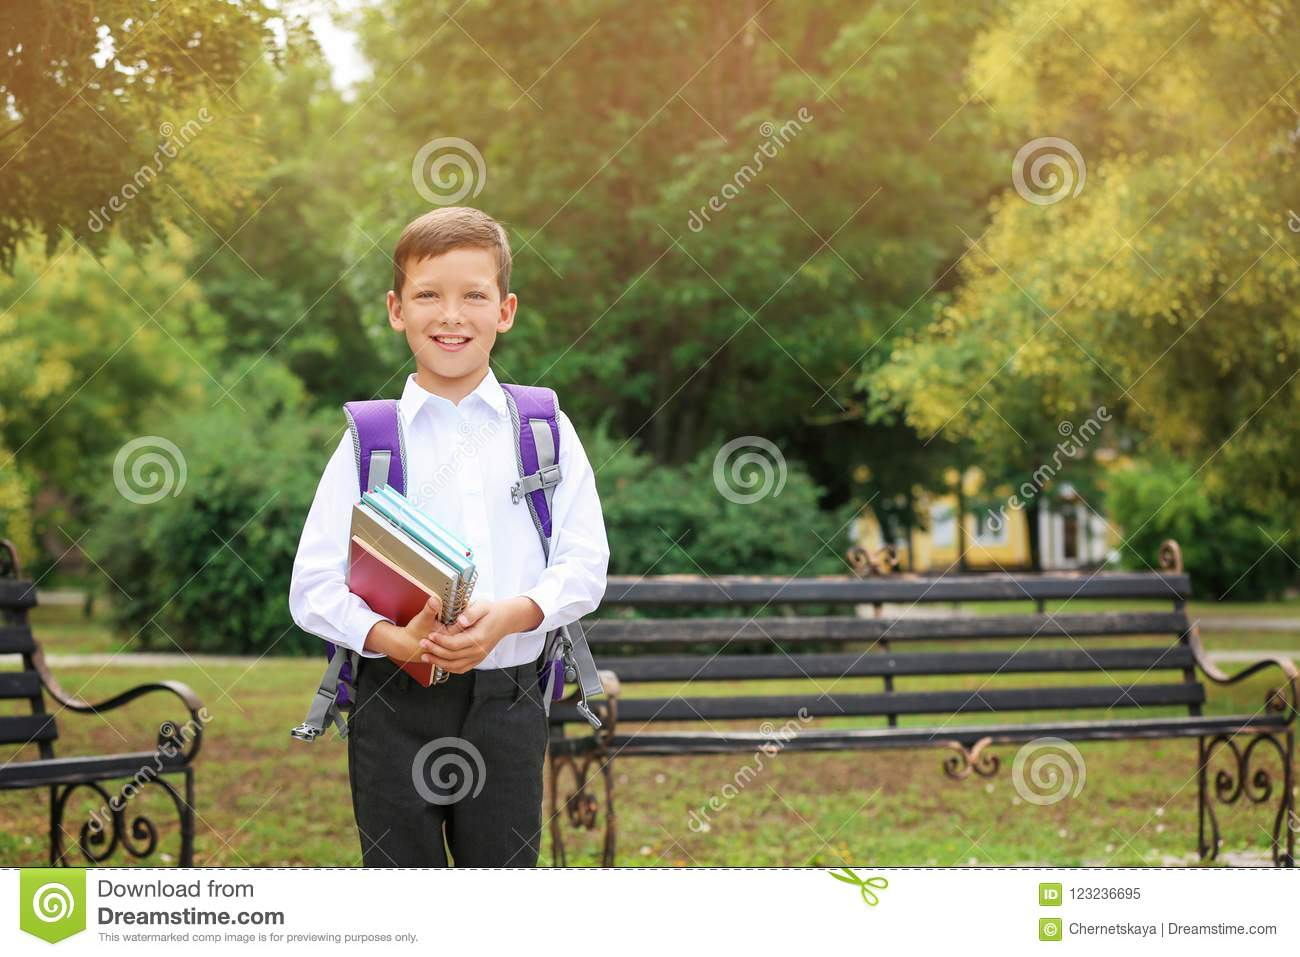 Cute little school child with stationery